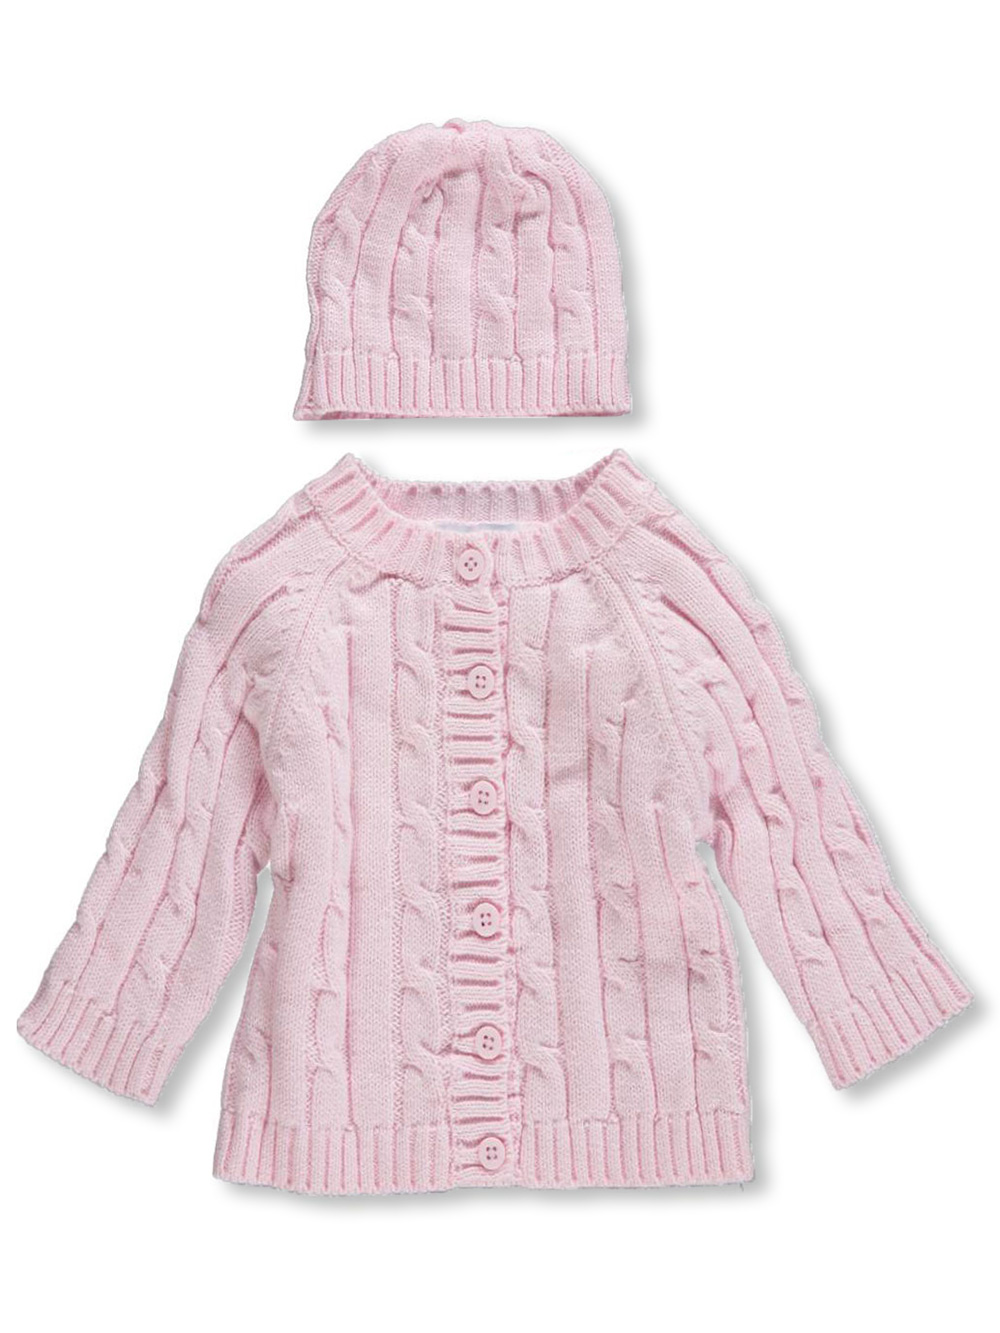 Baby Dove Girls Cable Knit Cardigan & Beanie Set (Sizes 3M - 9M) at Sears.com